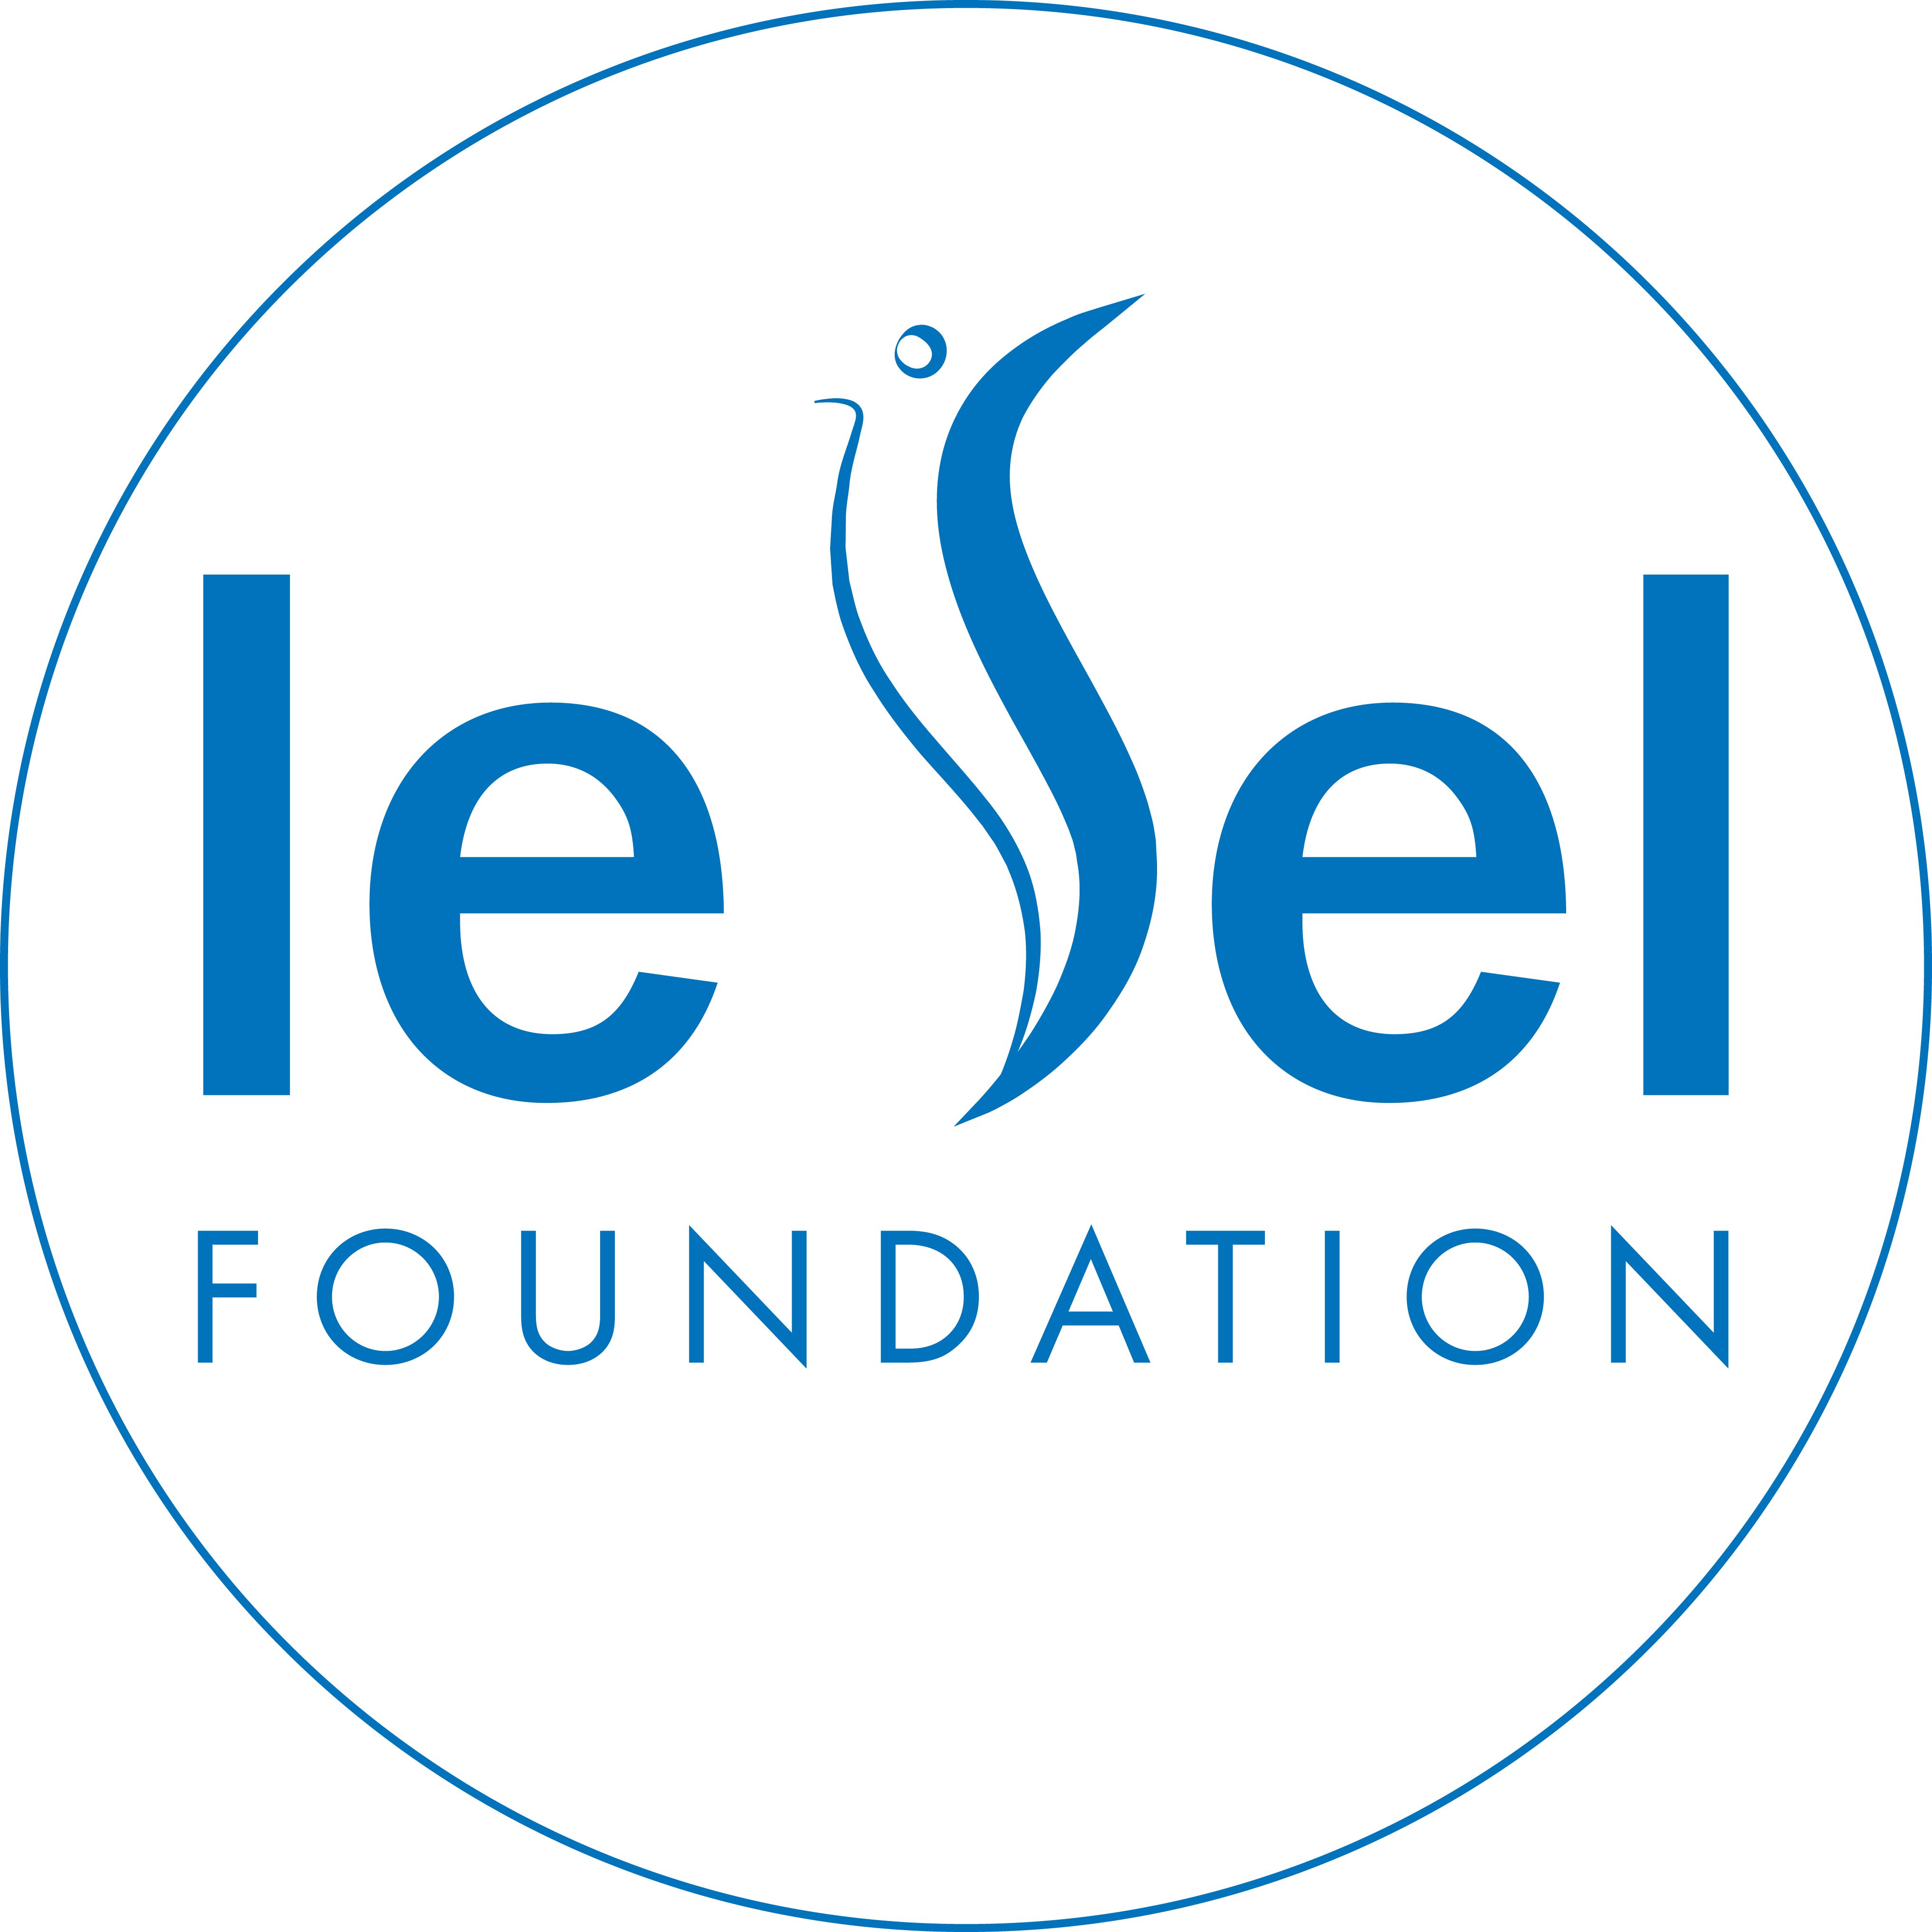 Lesel Foundation